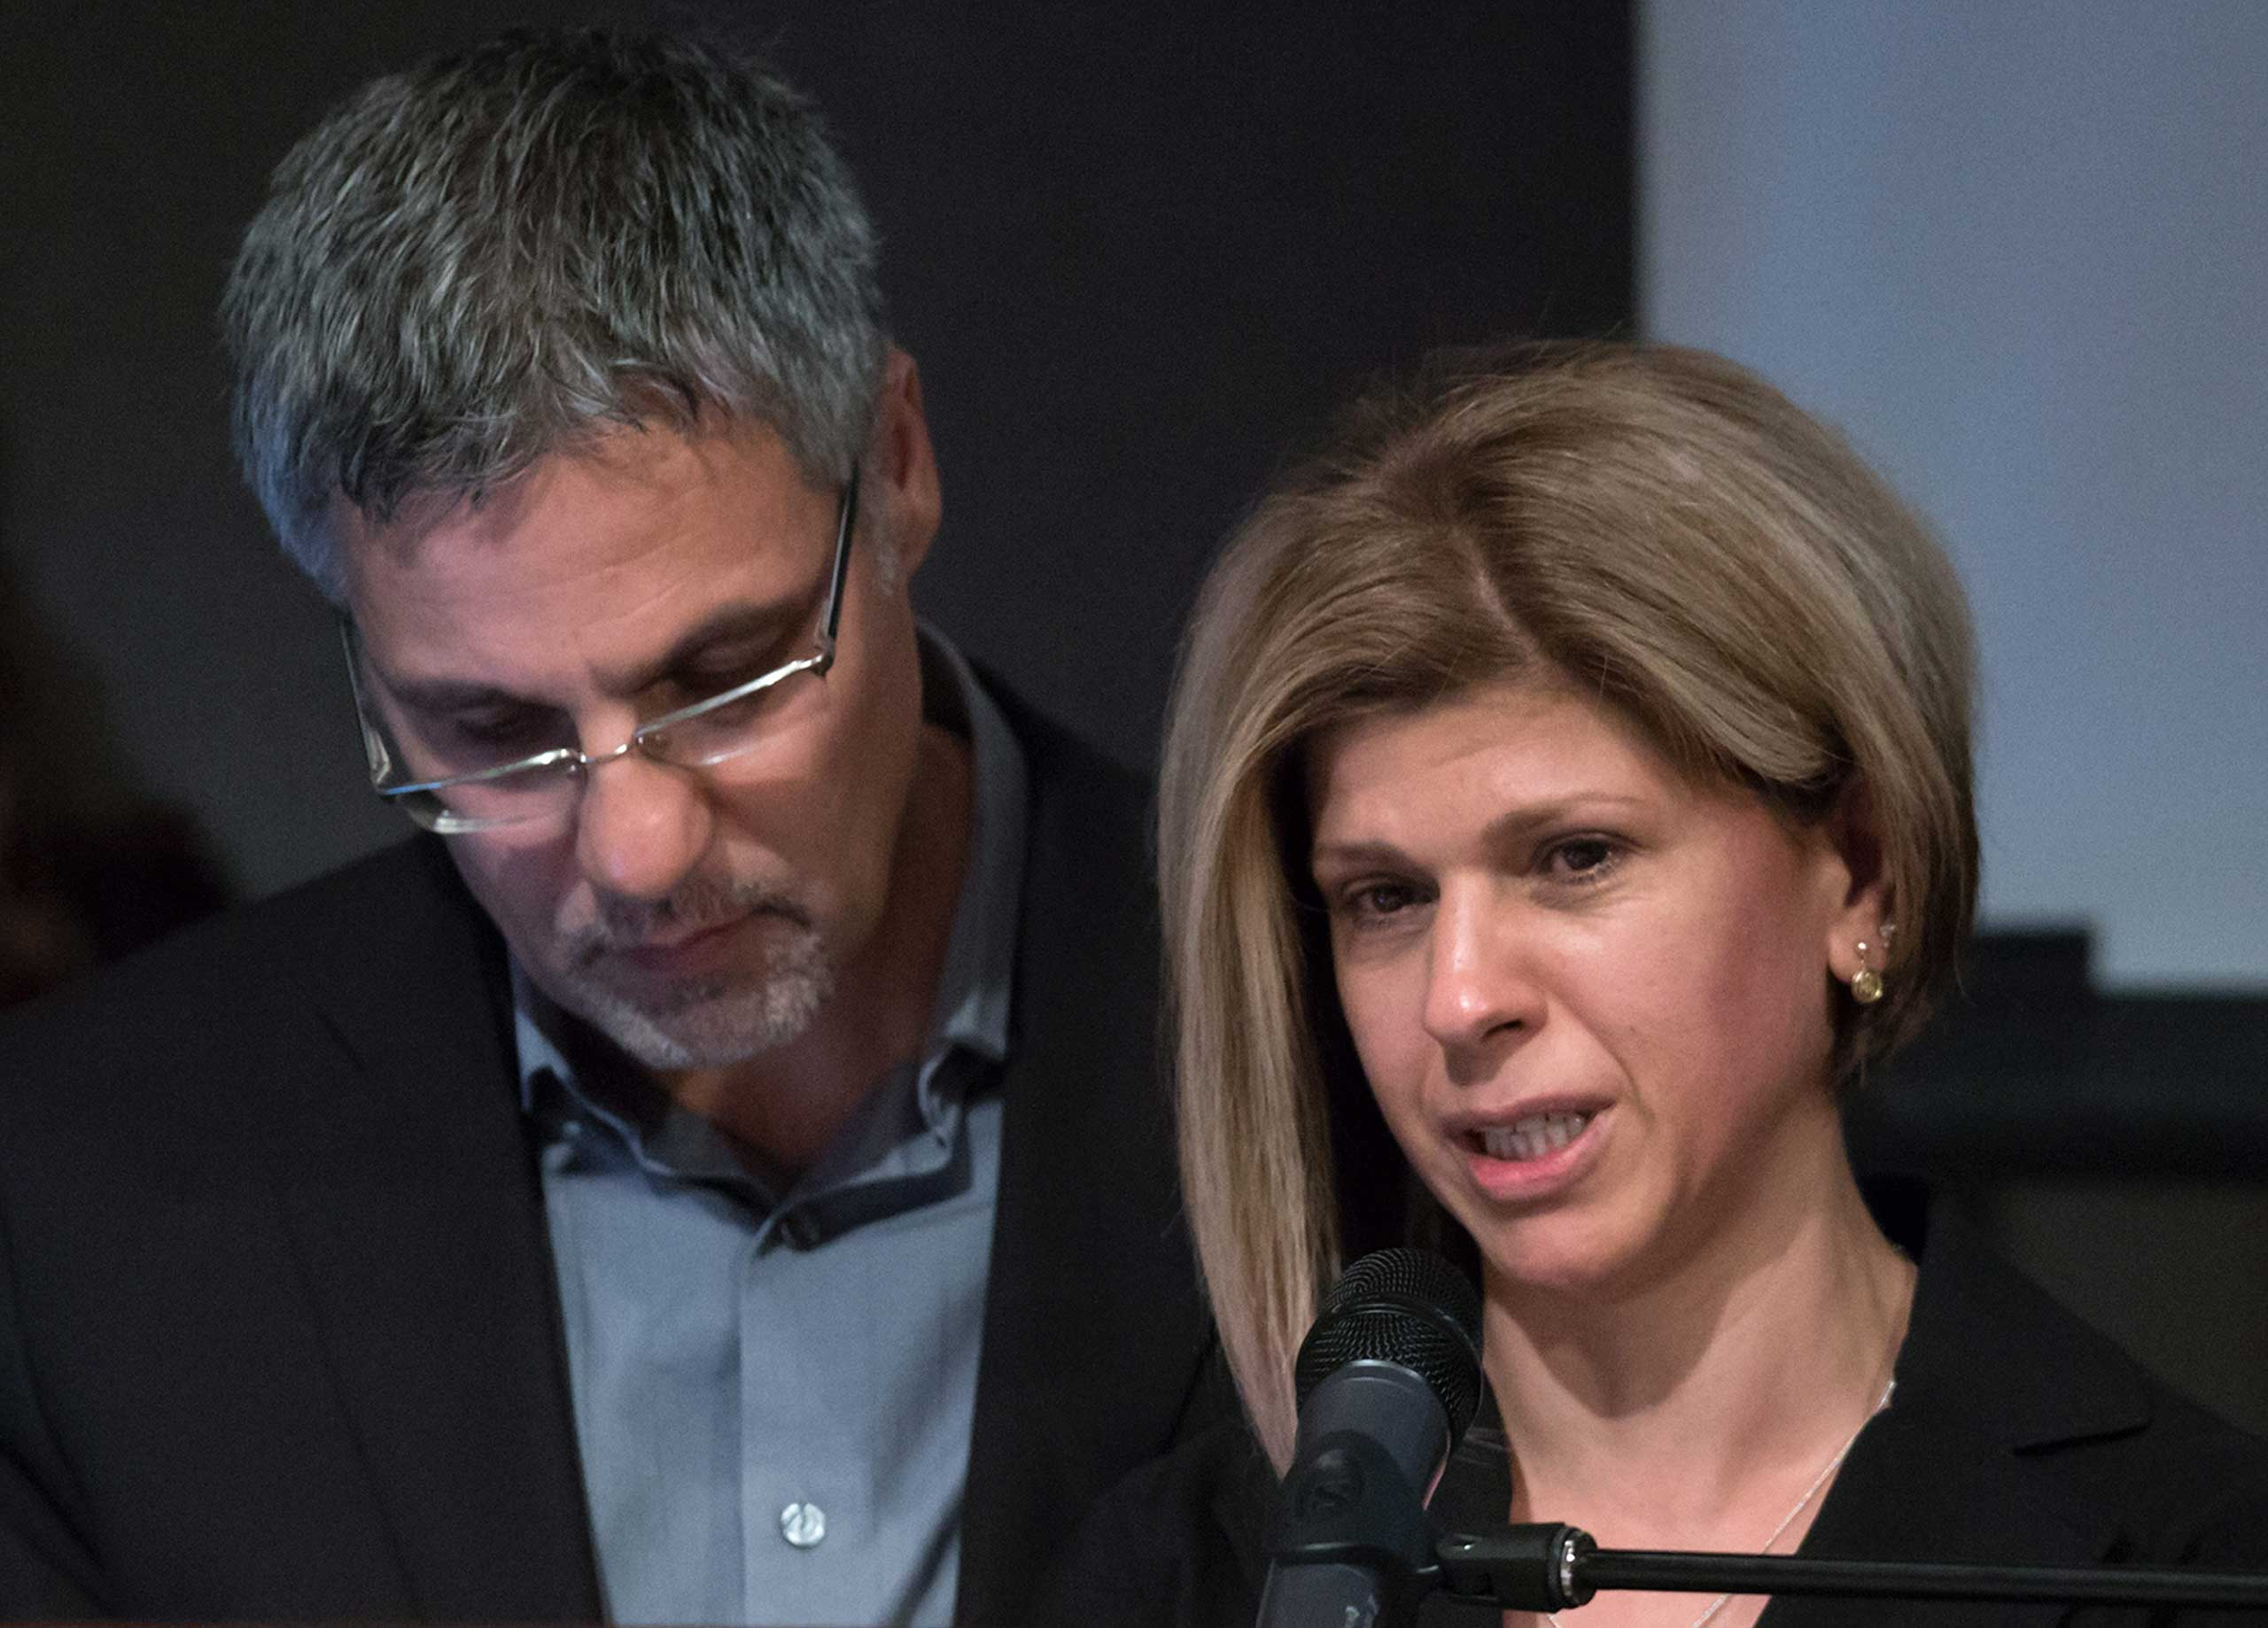 Tima Kurdi, right, aunt of late brothers Alan and Ghalib Kurdi, is comforted by her husband, Rocco Logozzo, as she speaks during a memorial service for the boys and their mother in Vancouver, British Columbia, Canada on, Sept. 5, 2015.